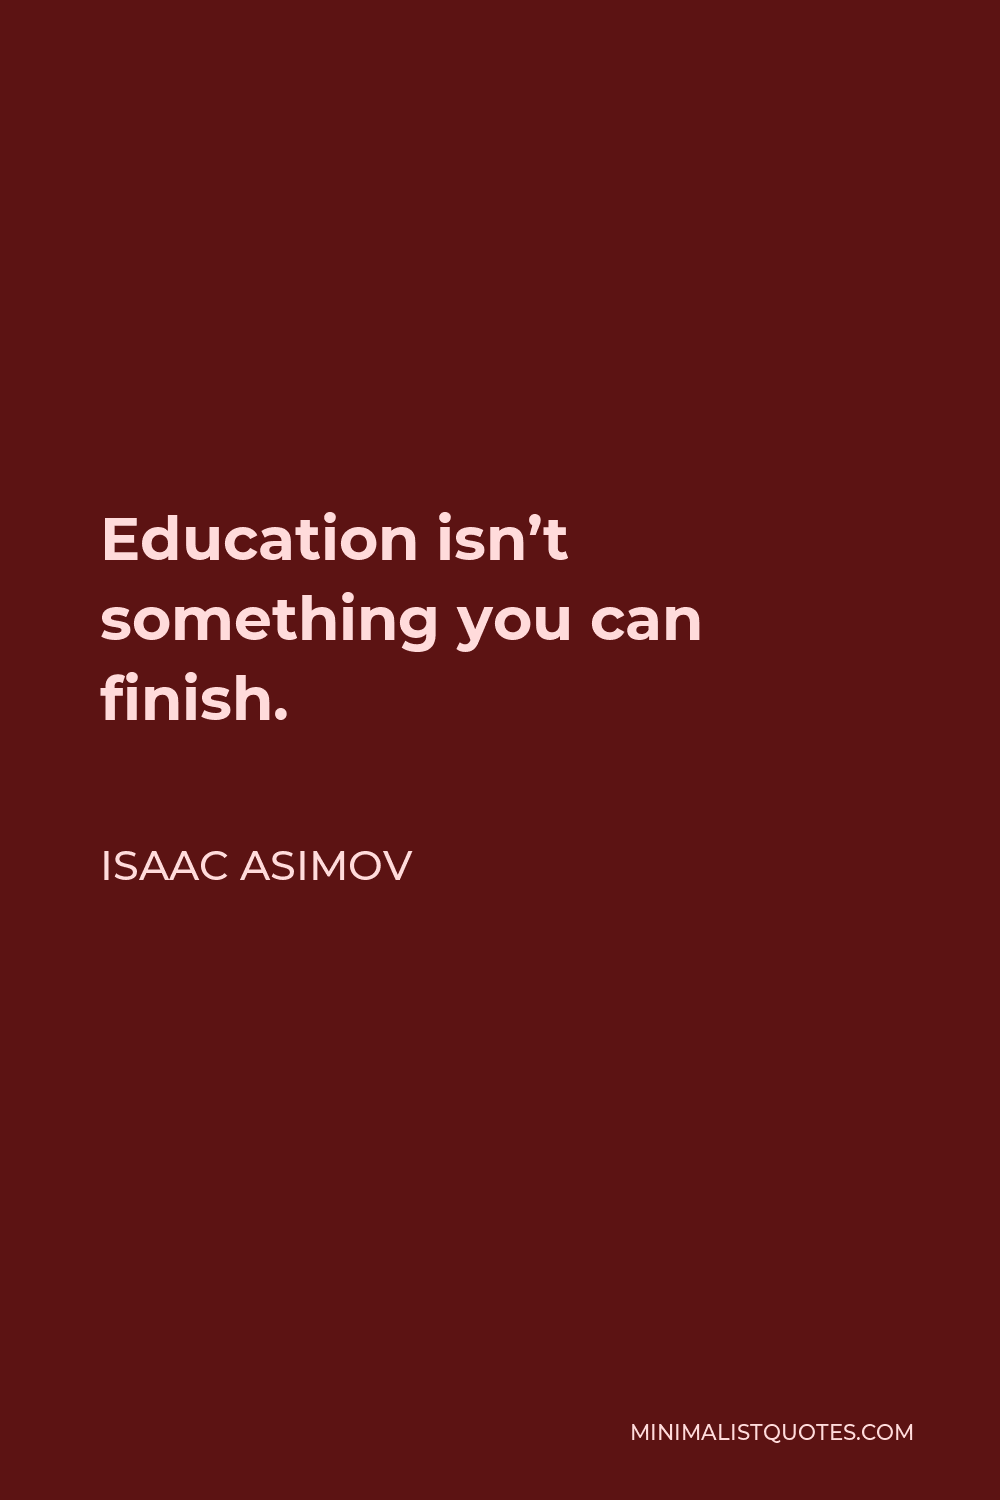 Isaac Asimov Quote - Education isn't something you can finish.